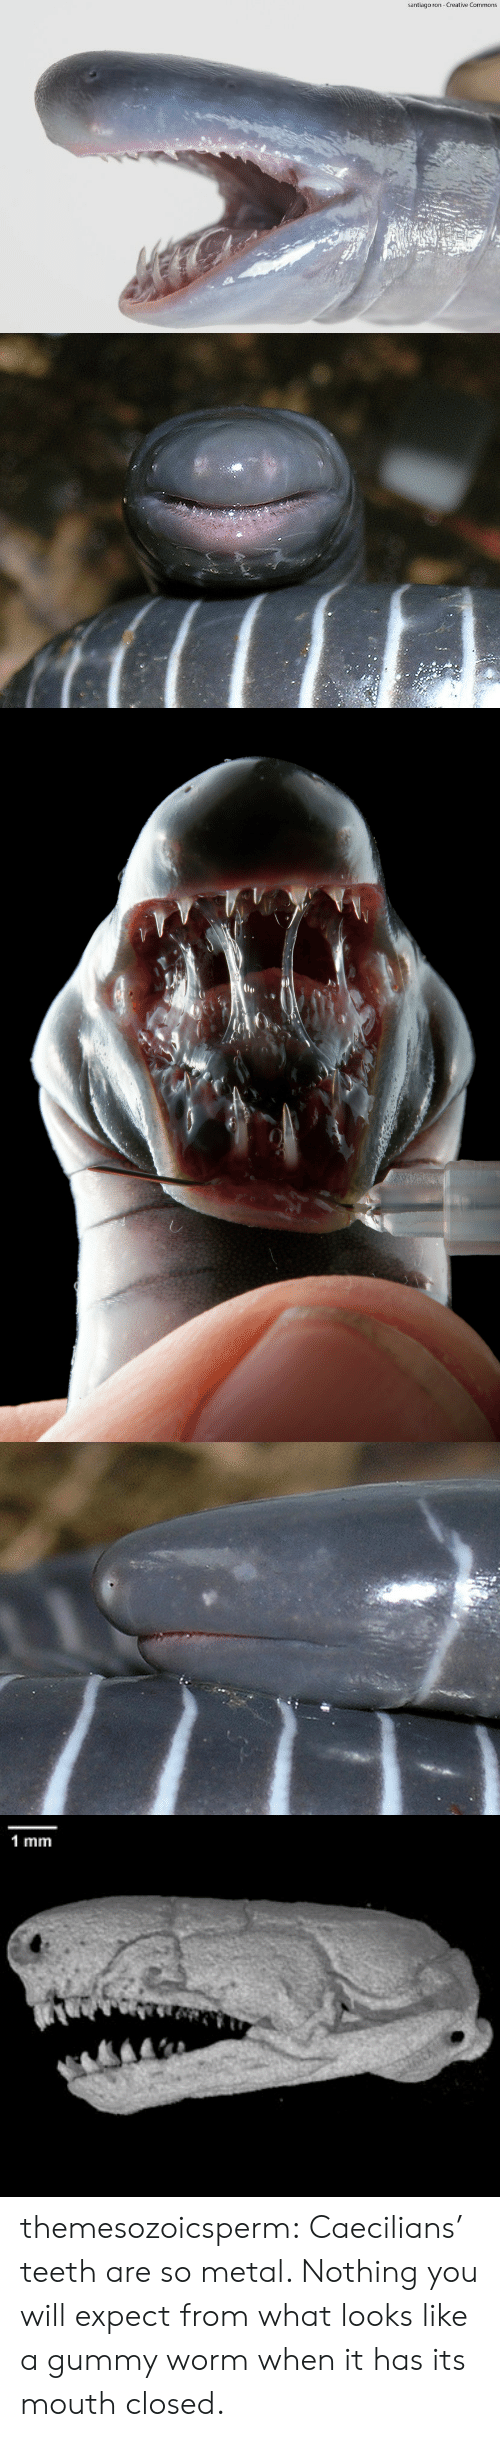 commons: santiago ron- Creative Commons   1 mm themesozoicsperm:  Caecilians' teeth are so metal. Nothing you will expect from what looks like a gummy worm when it has its mouth closed.